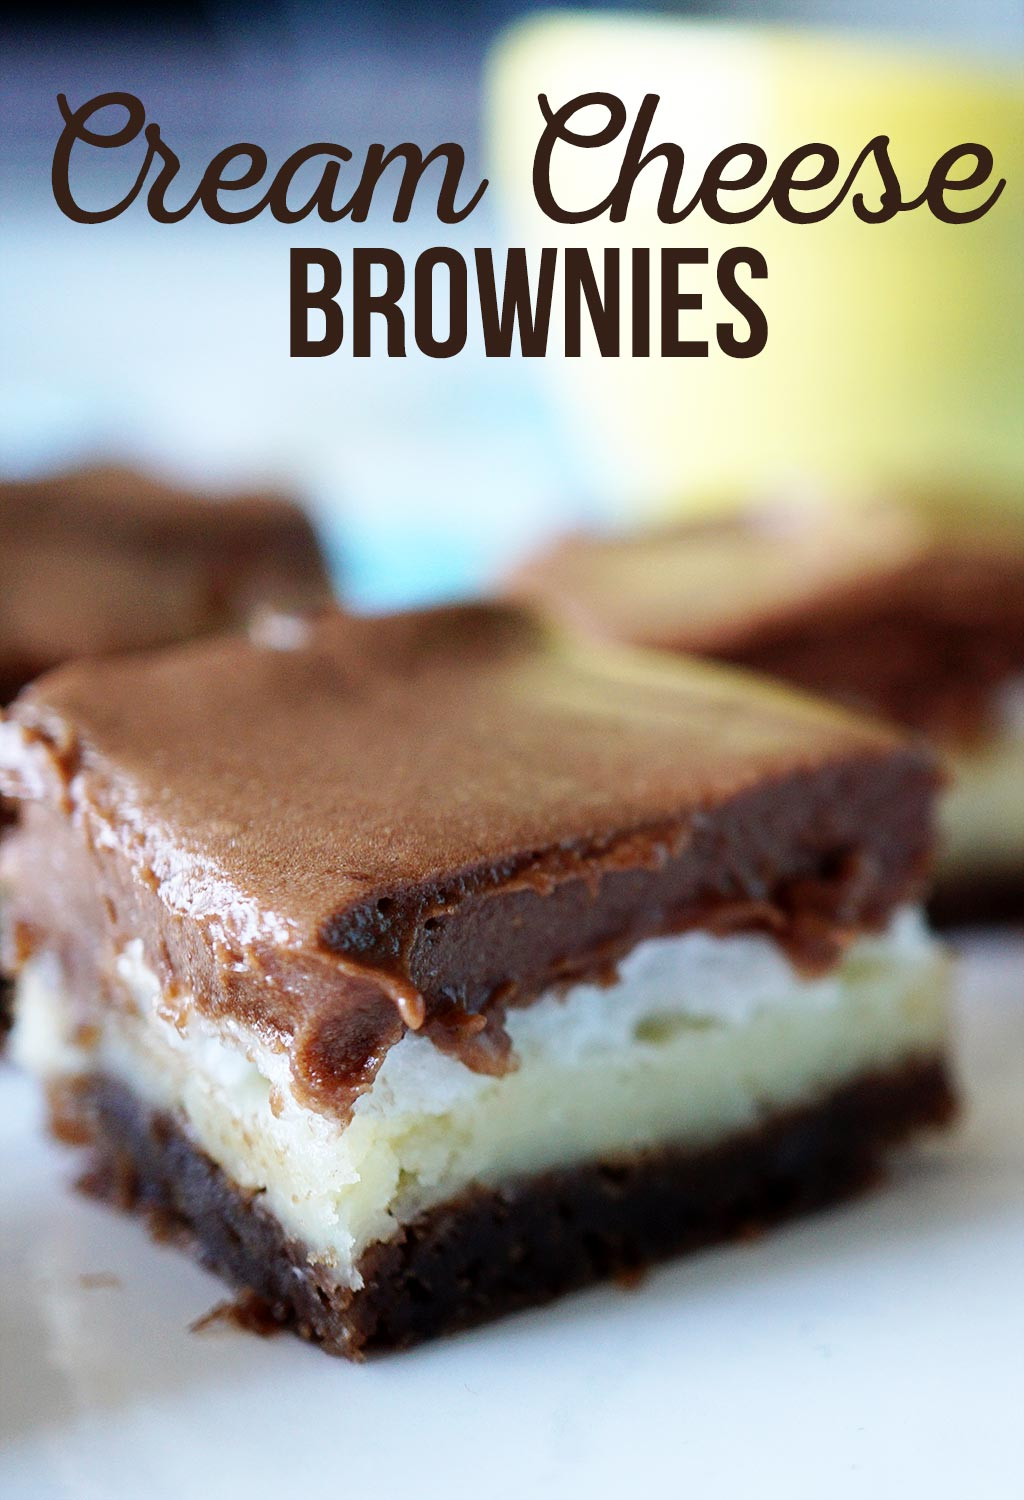 Cream Cheese Brownies take brownies to a whole new level! With 4 decadent layers of cream cheese, marshmallow and of course chocolate.